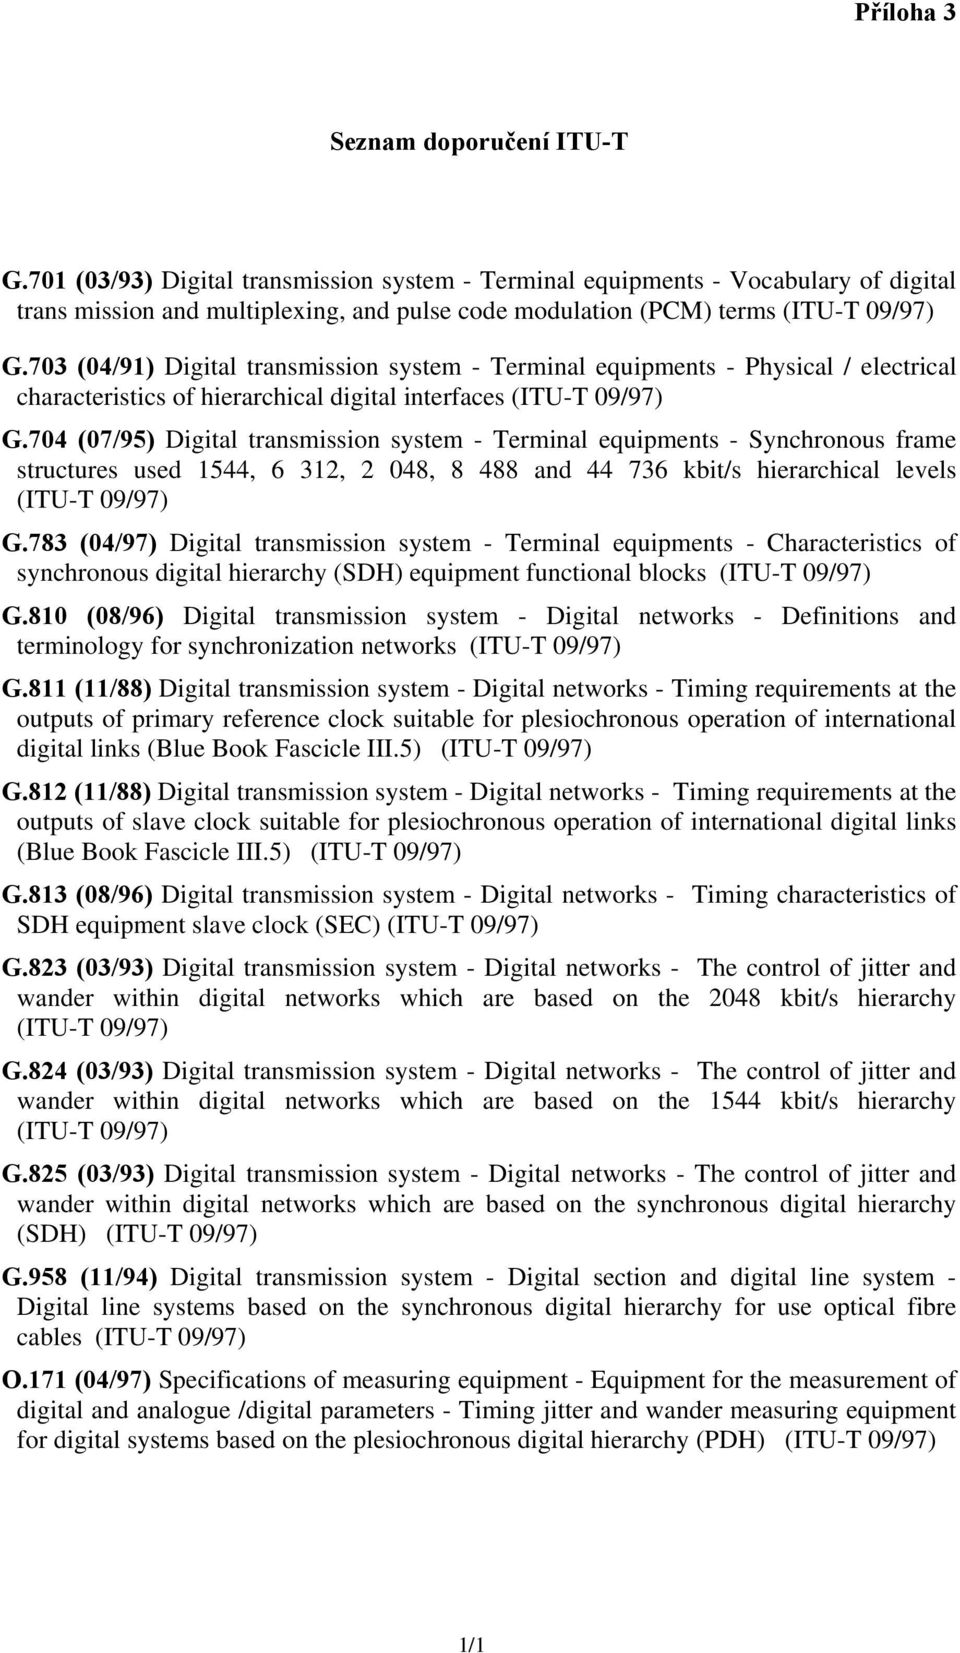 703 (04/91) Digital transmission system - Terminal equipments - Physical / electrical characteristics of hierarchical digital interfaces (ITU-T 09/97) G.